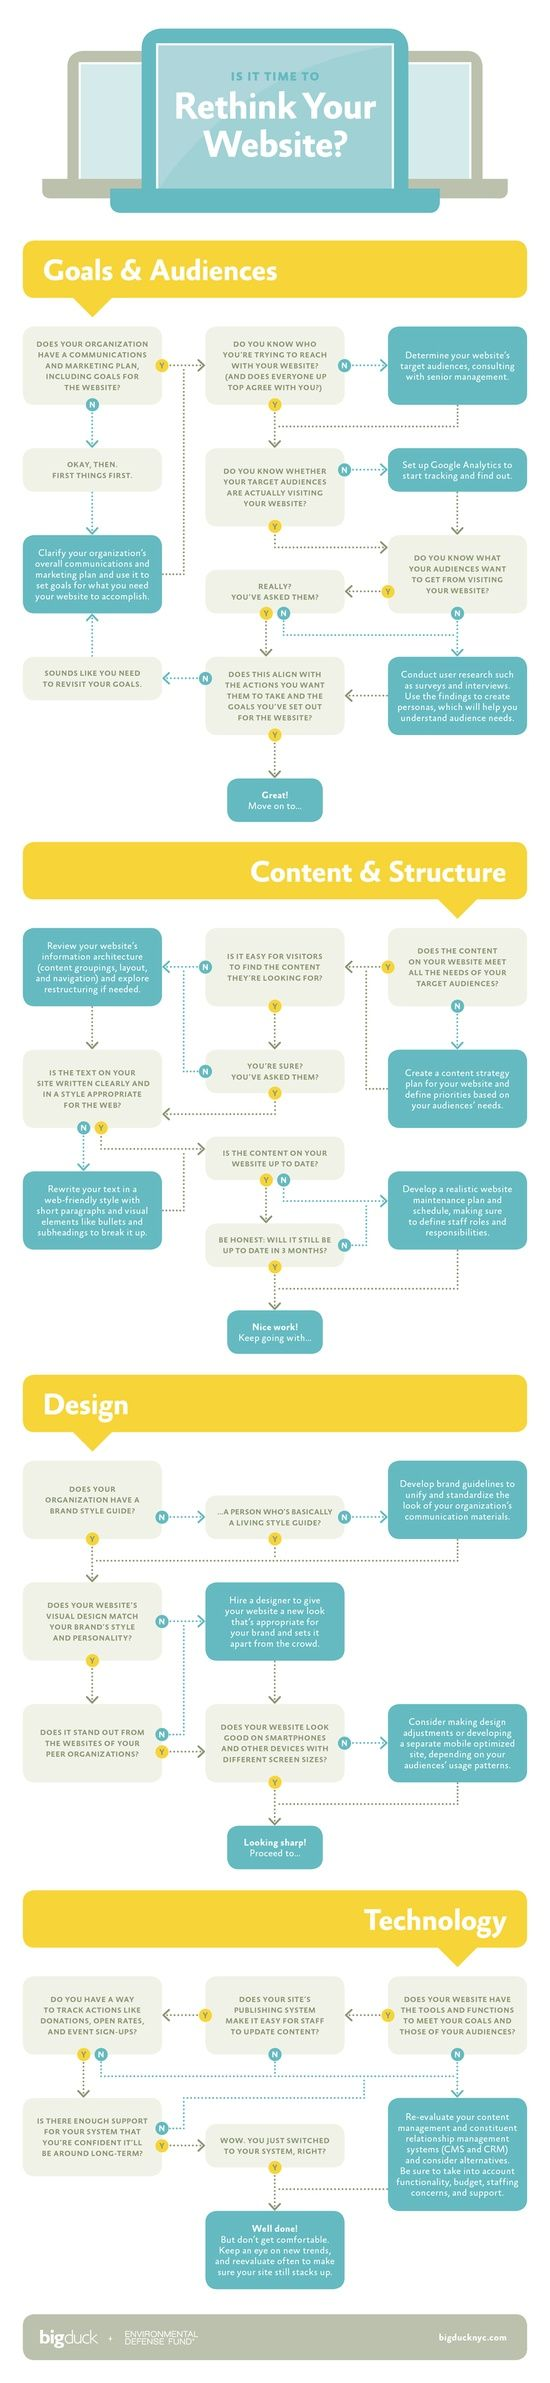 Is It Time To Rethink Your Website? #infographic